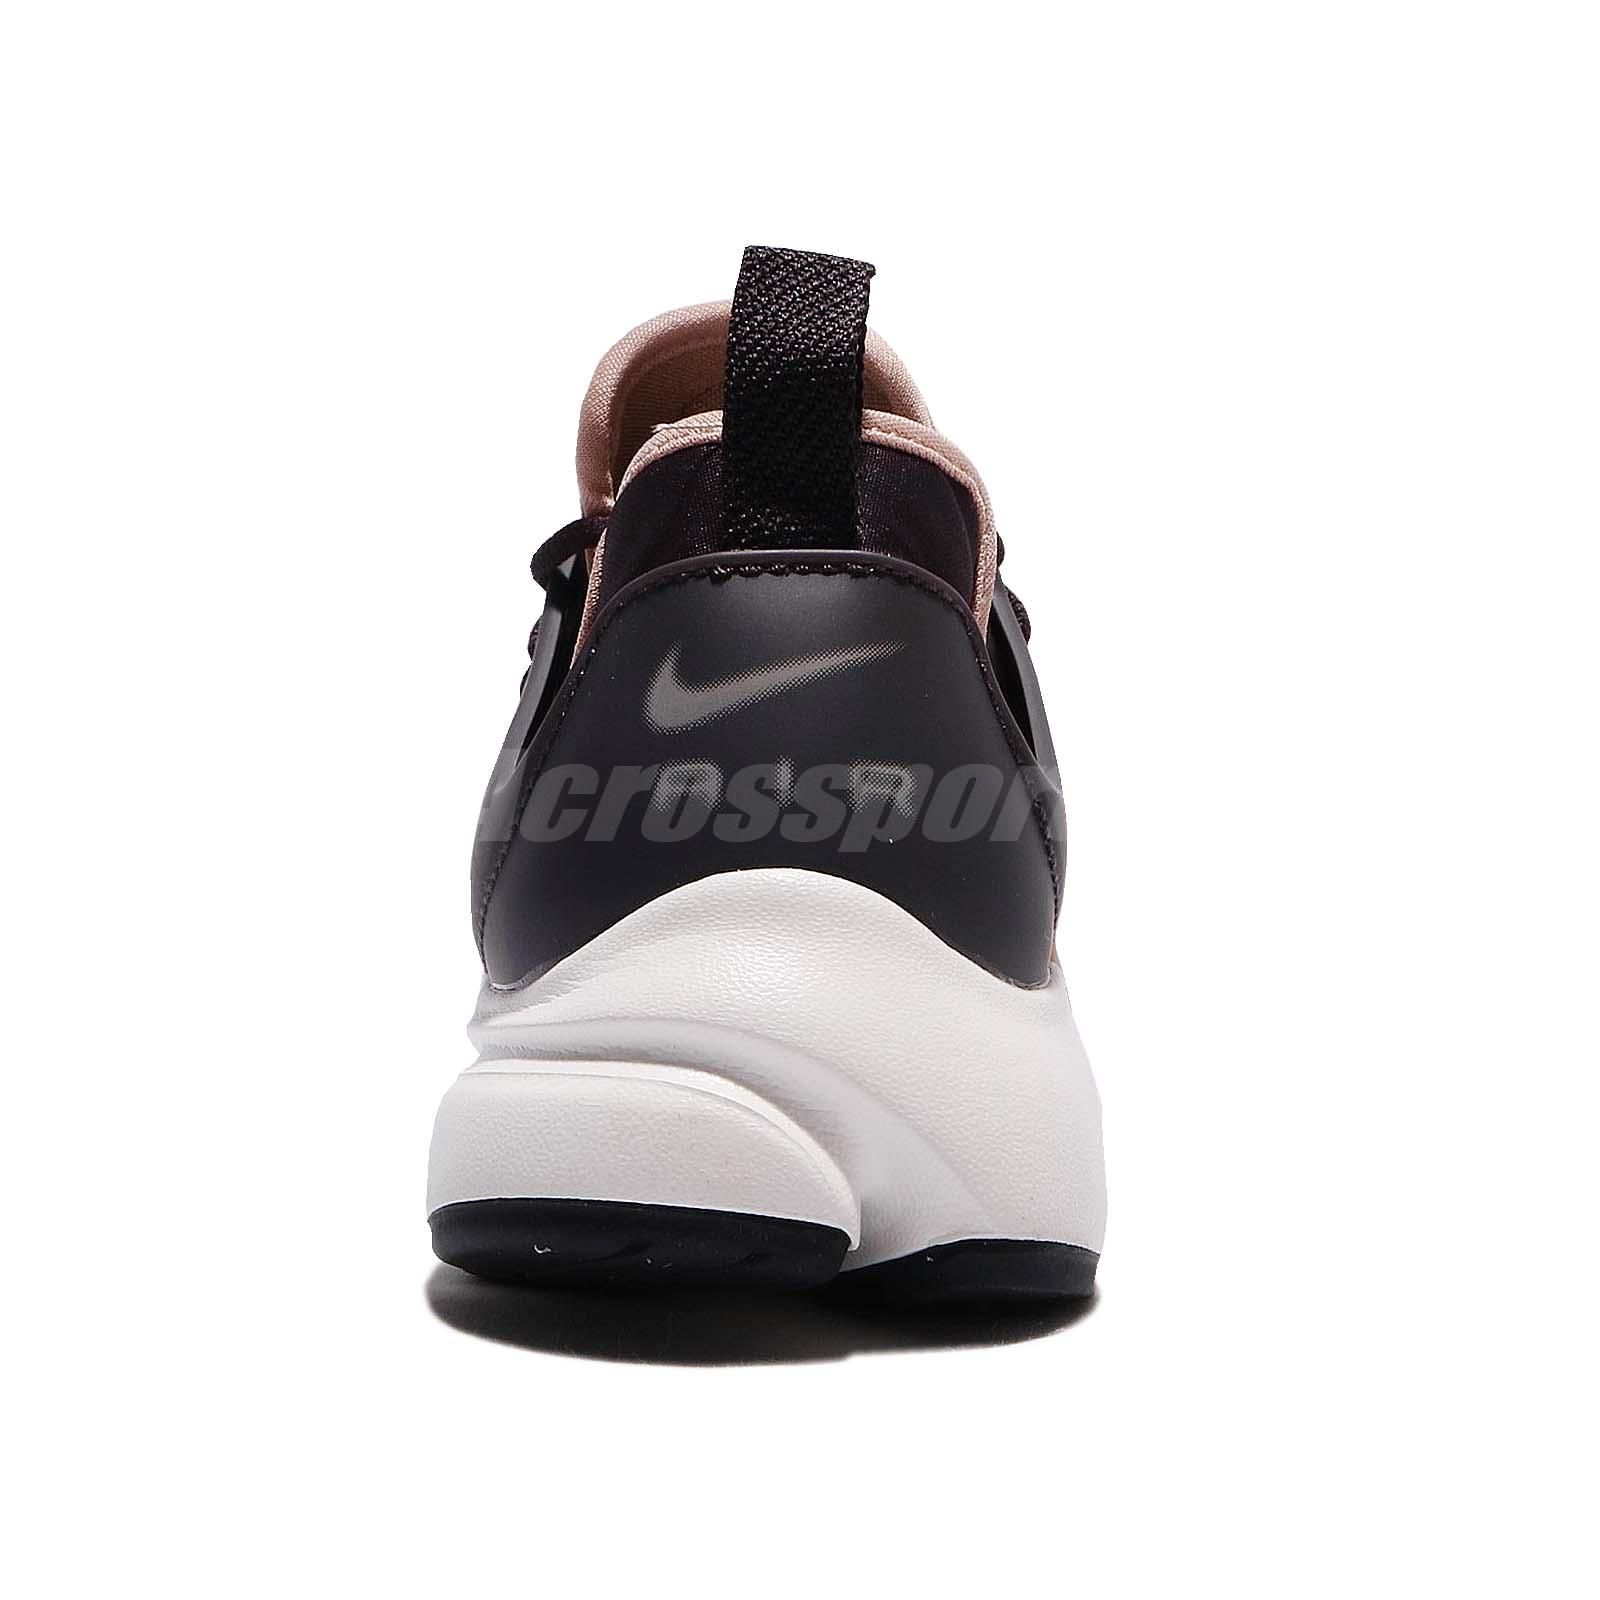 finest selection 062b5 366ec Nike Wmns Air Presto Port Wine Particle Pink Women Shoes Sneakers ...